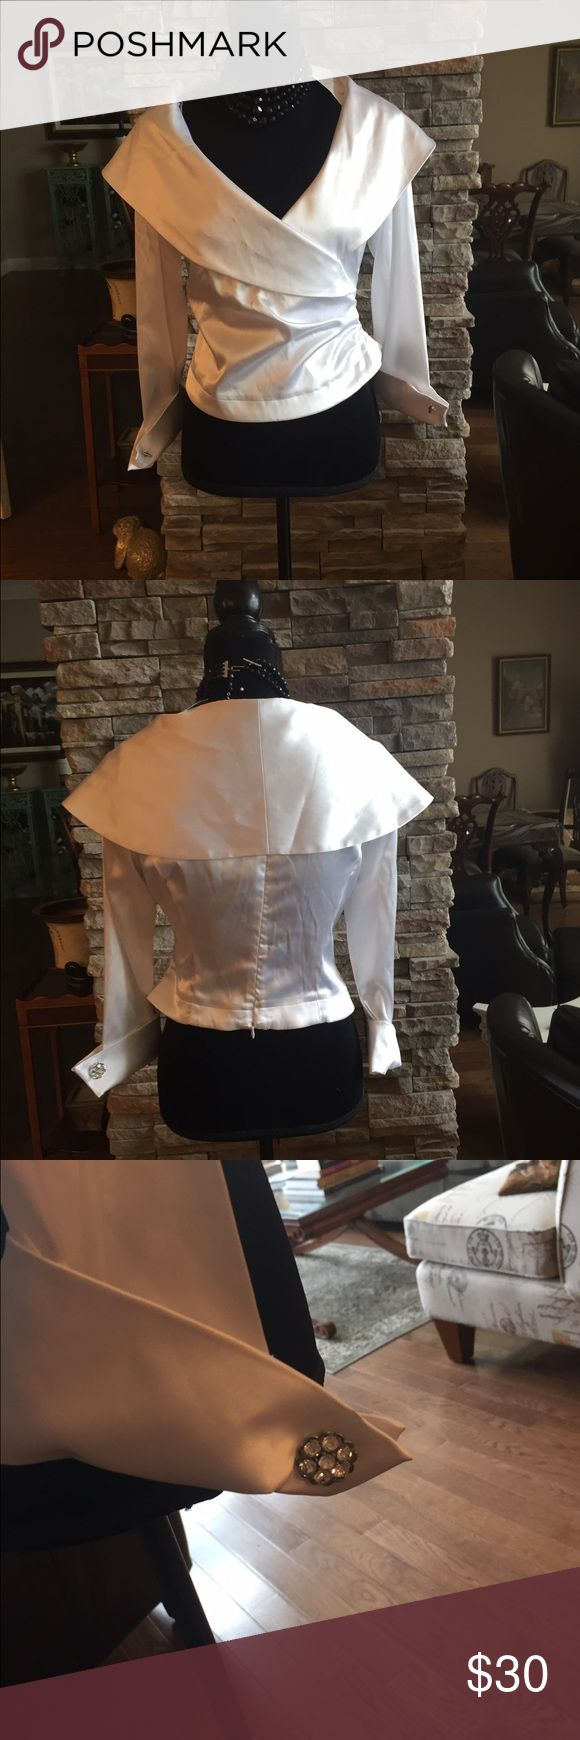 Harris Wallace white evening blouse Harris Wallace white evening blouse with wide fold-over collar, back zipper, wide cuffed sleeves with rhinestone cuff links.  New with tags.  It doesn't fit me, so just trying to get close to what I paid., p4 Harris Wallace Tops Blouses